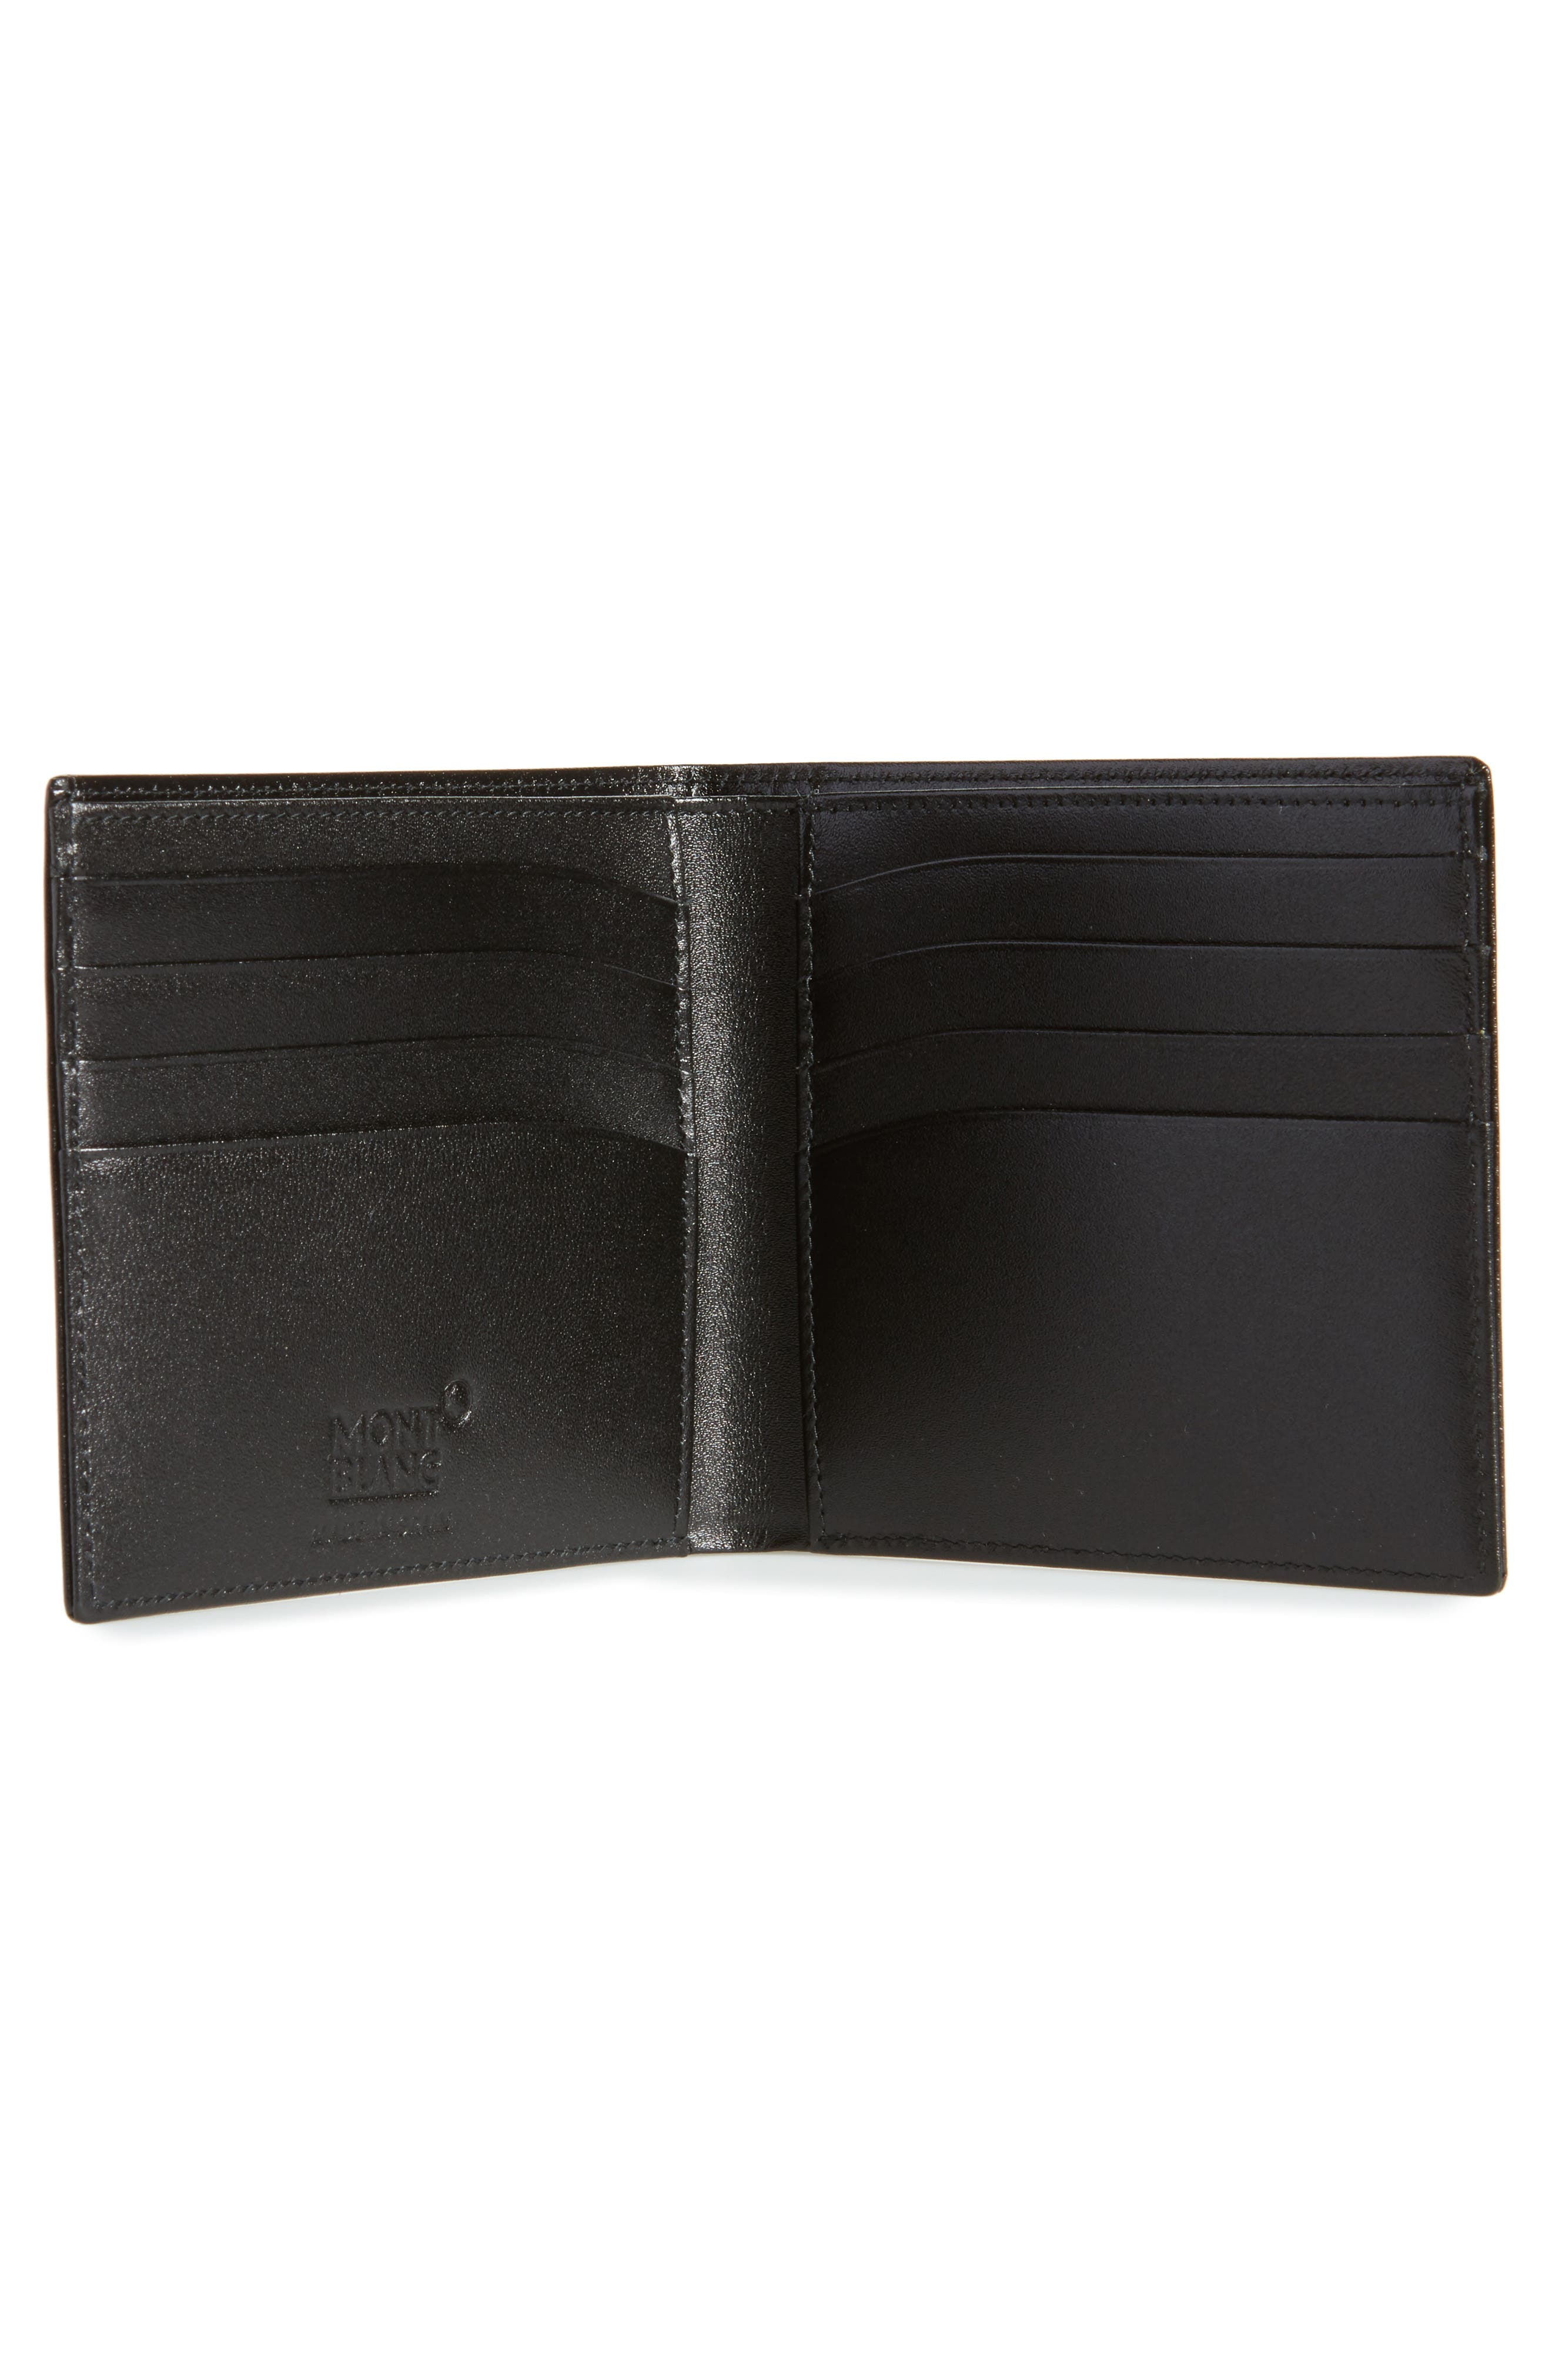 Meisterstück Leather Wallet,                             Alternate thumbnail 2, color,                             Black